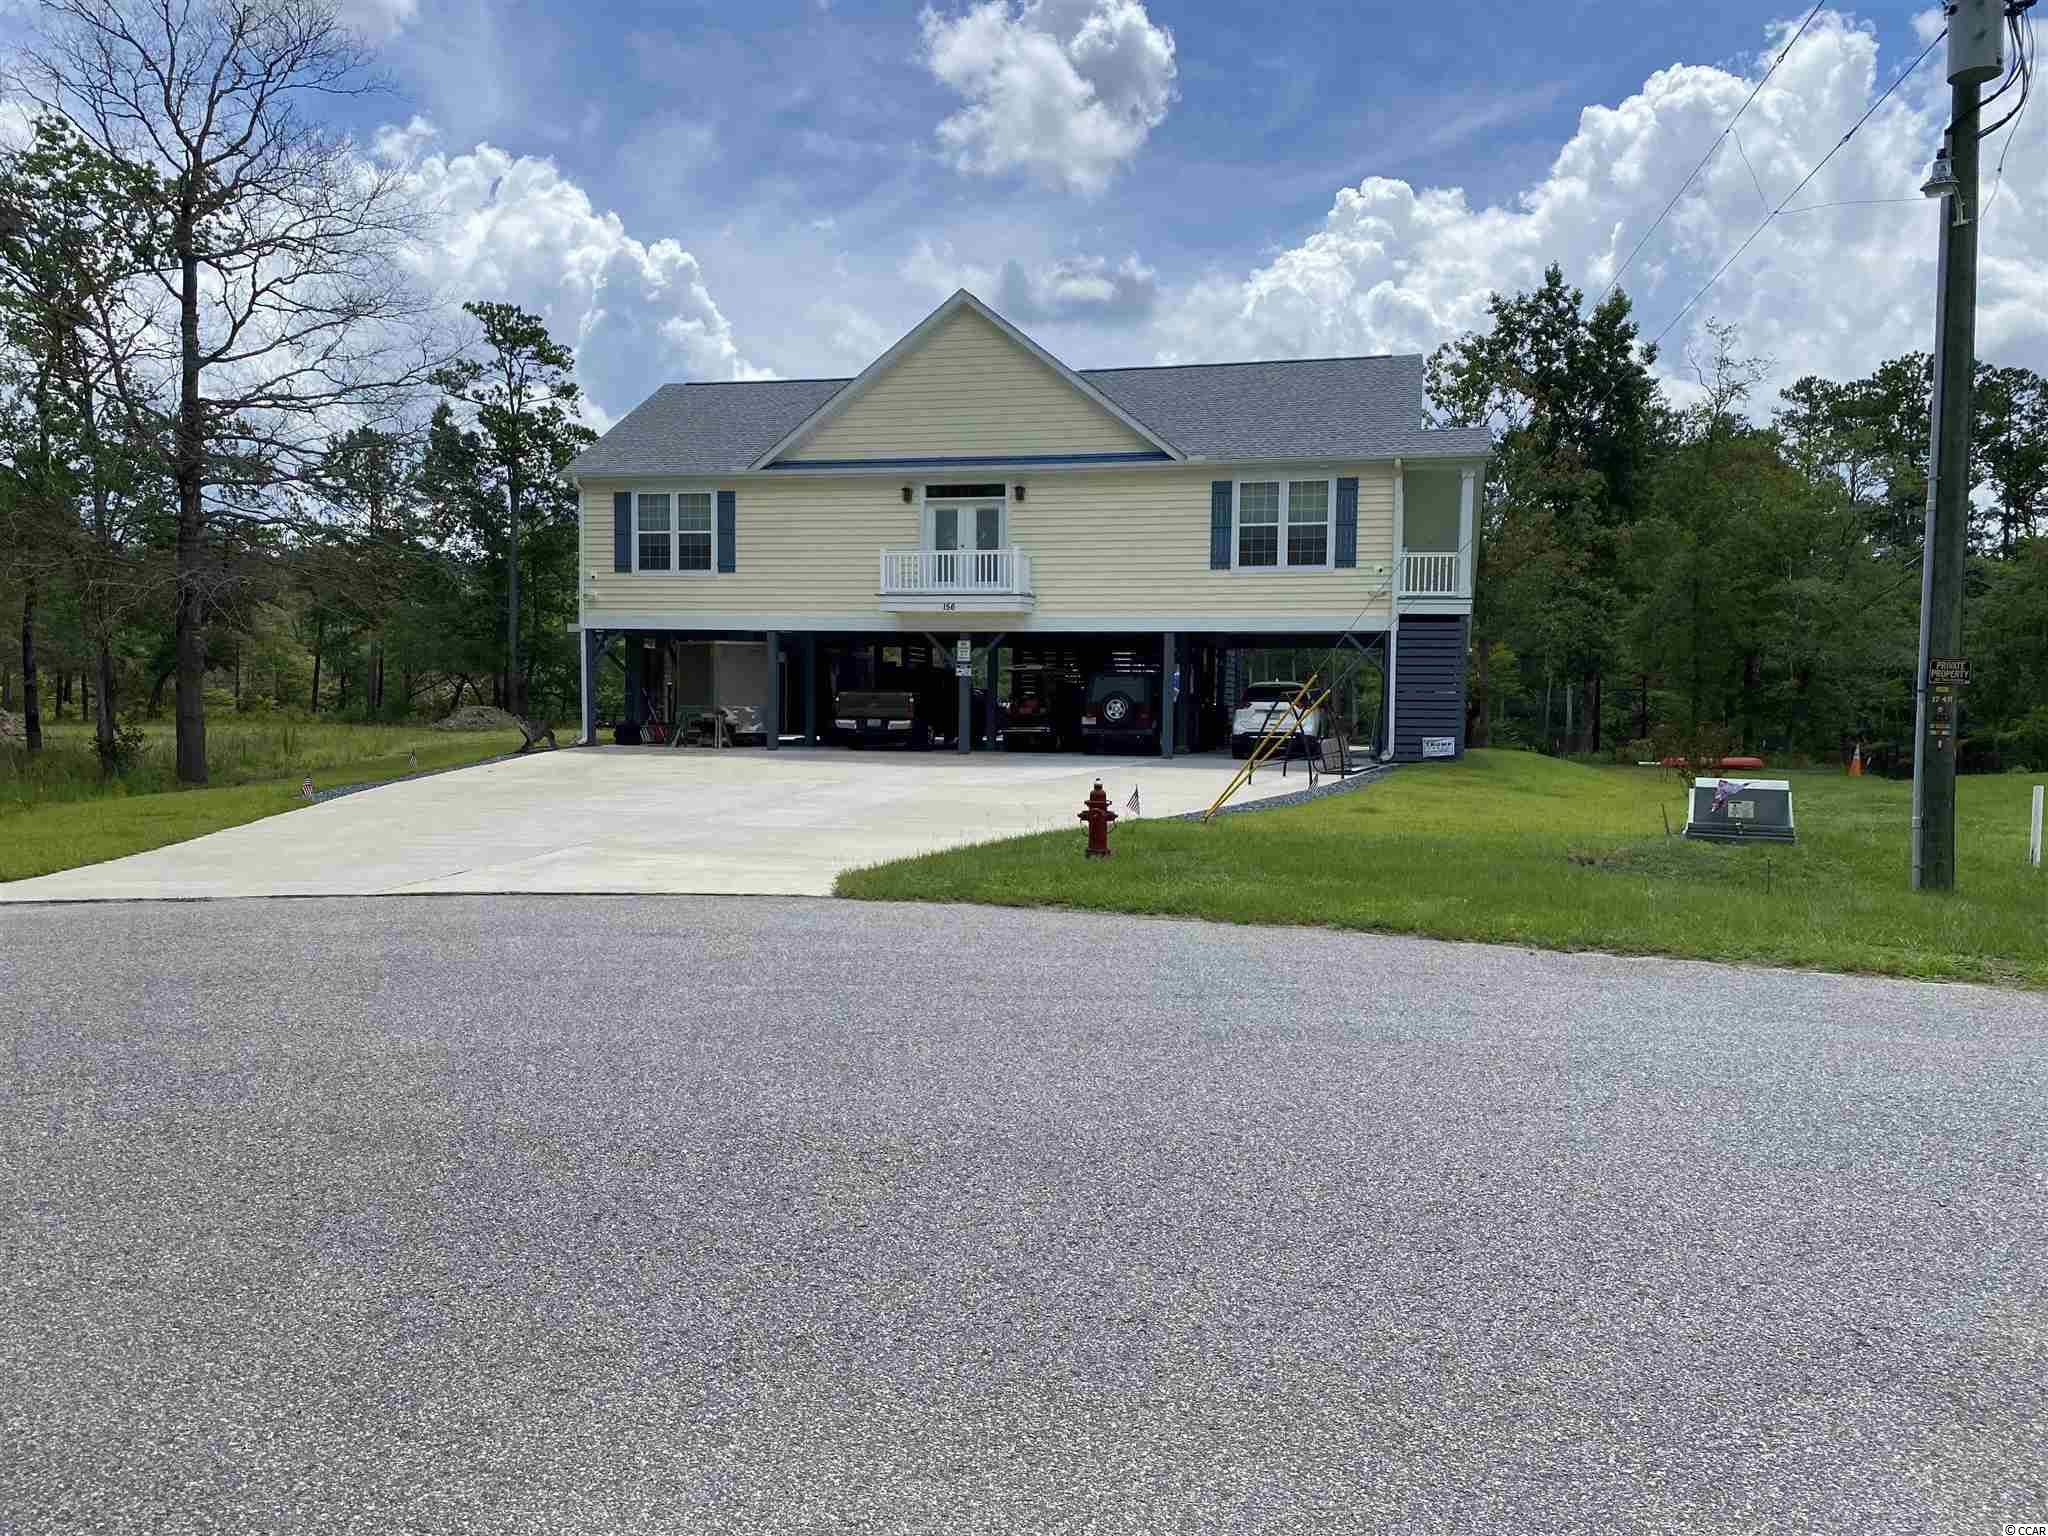 Beautiful custom built home ,2x6 exterior walls, all hardy plank trim, vinyl trex decking{99% maintenance free}, 10,000 lb. mooring whips on the dock, tankless gas hot water heater, interior walls all insulated, dual baking oven, dinette and 8 chairs convey. Home is located at the end of Lure ct. in the cul de sac. this home has a hard wired camera security system inside and outside. All appliances convey also the washer and dryer. lots of storage and parking under the home, also a huge drive way in front of the house. Private gated community dock to land your jet ski or boats. 22 miles to Conway on the waccamaw and 11 by car, this home is a must  see. Lots of other things to talk about.